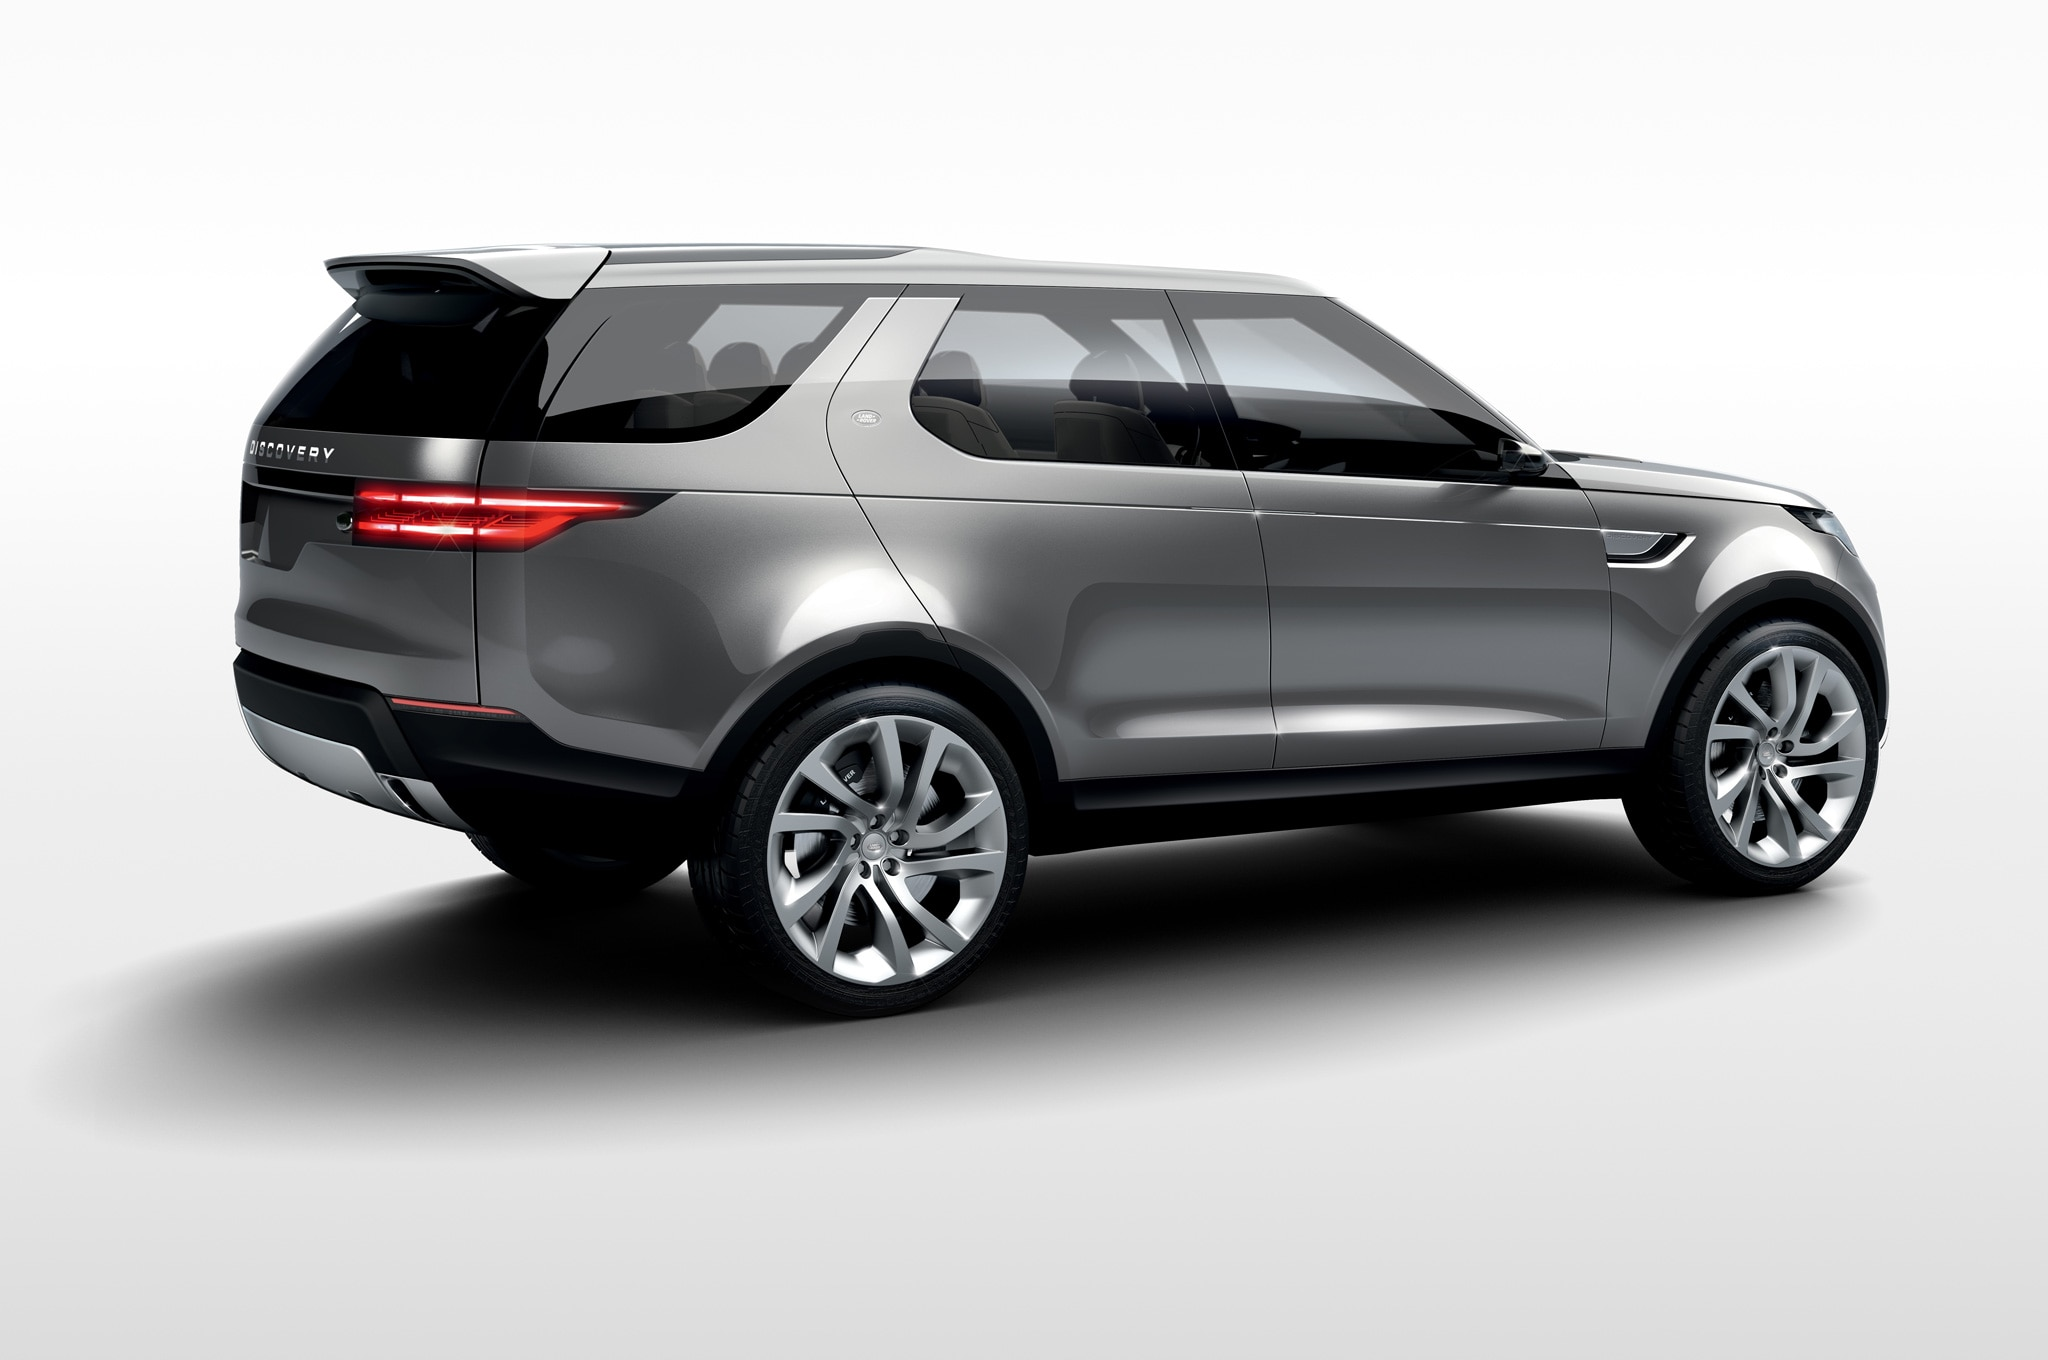 Land Rover Discovery Vision Concept rear side view white background